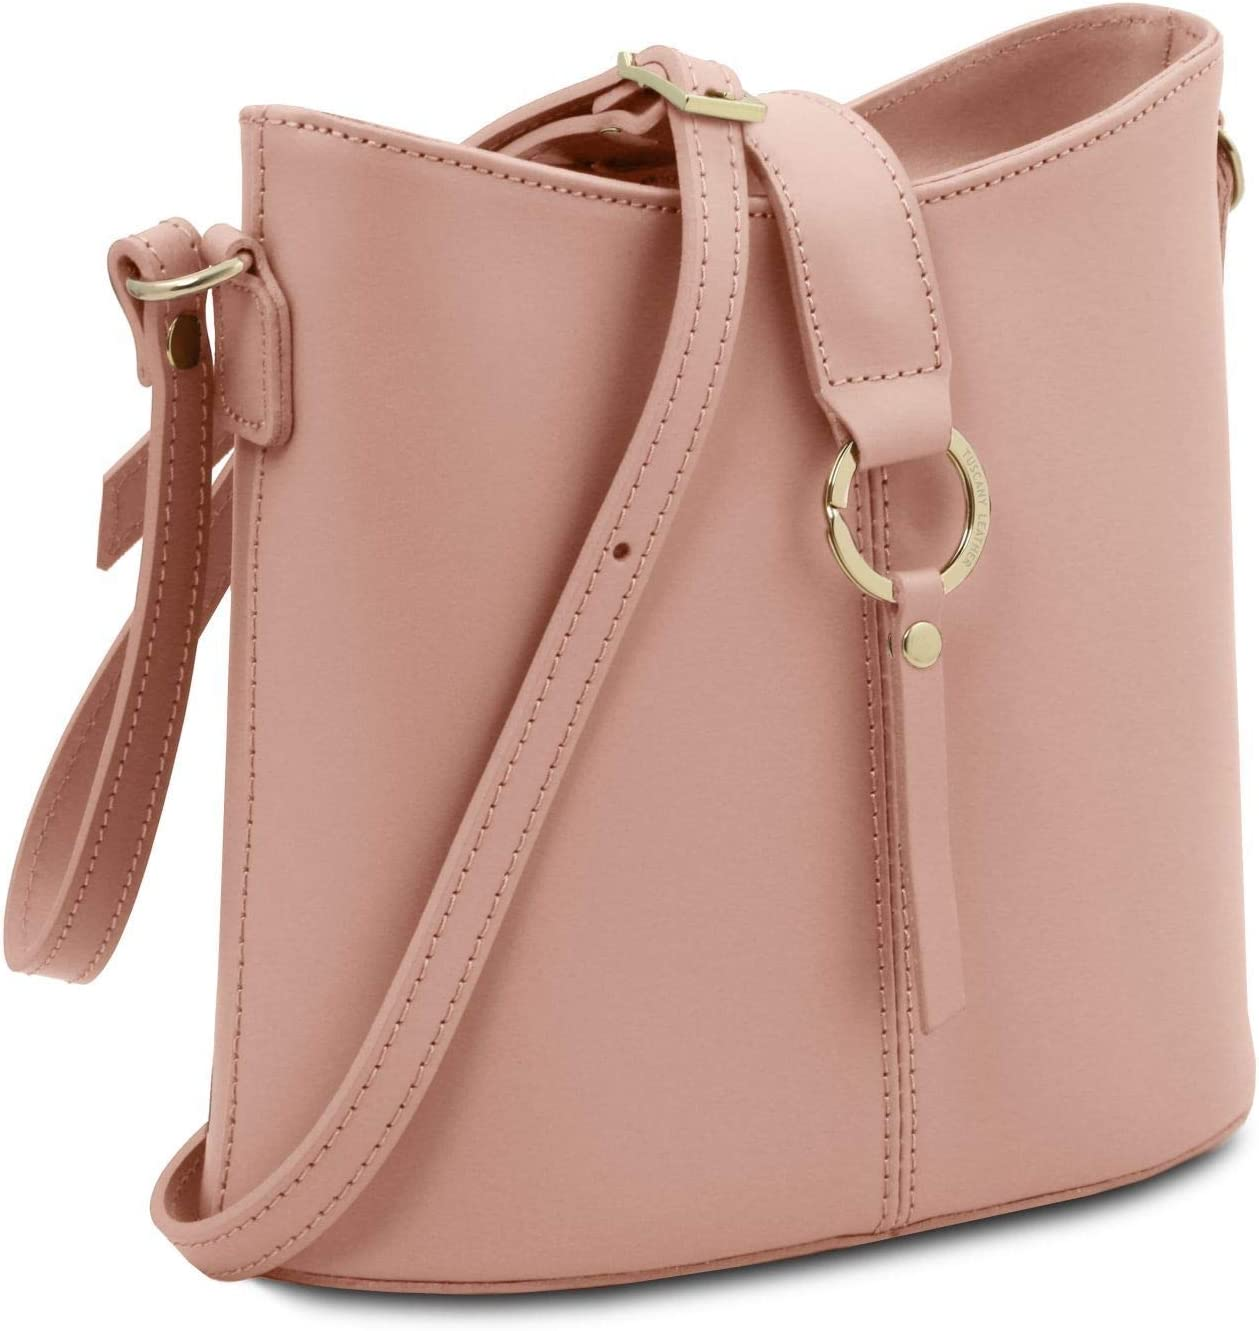 Tuscany Leather Teti Borsa a tracolla in pelle - TL141901 (Cognac) Ballet Pink